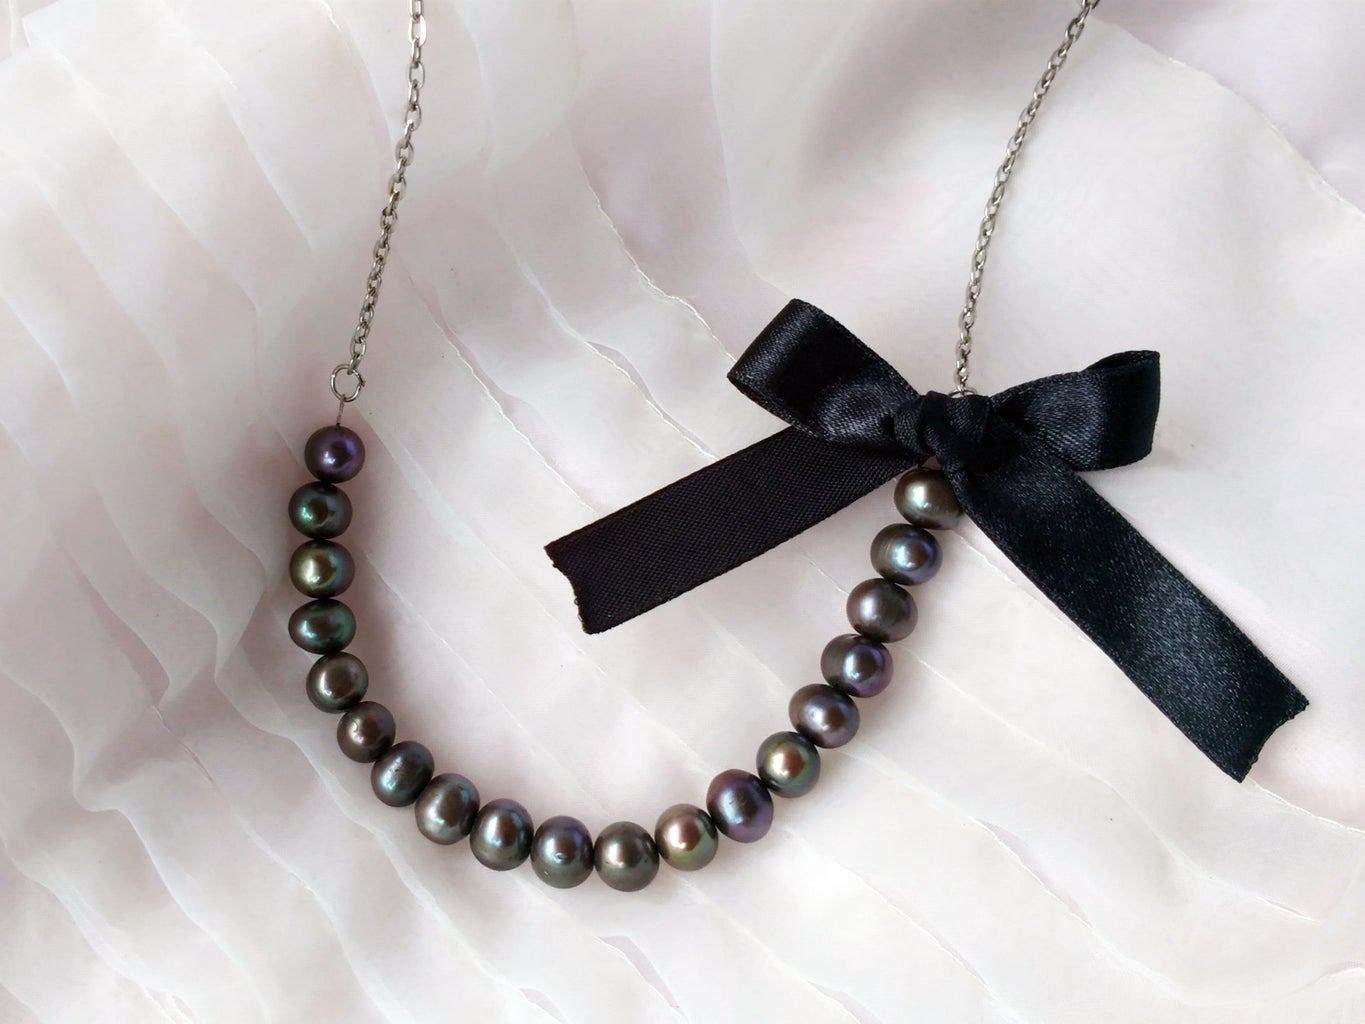 How to Make a Necklace by Recycling Old Jewelry